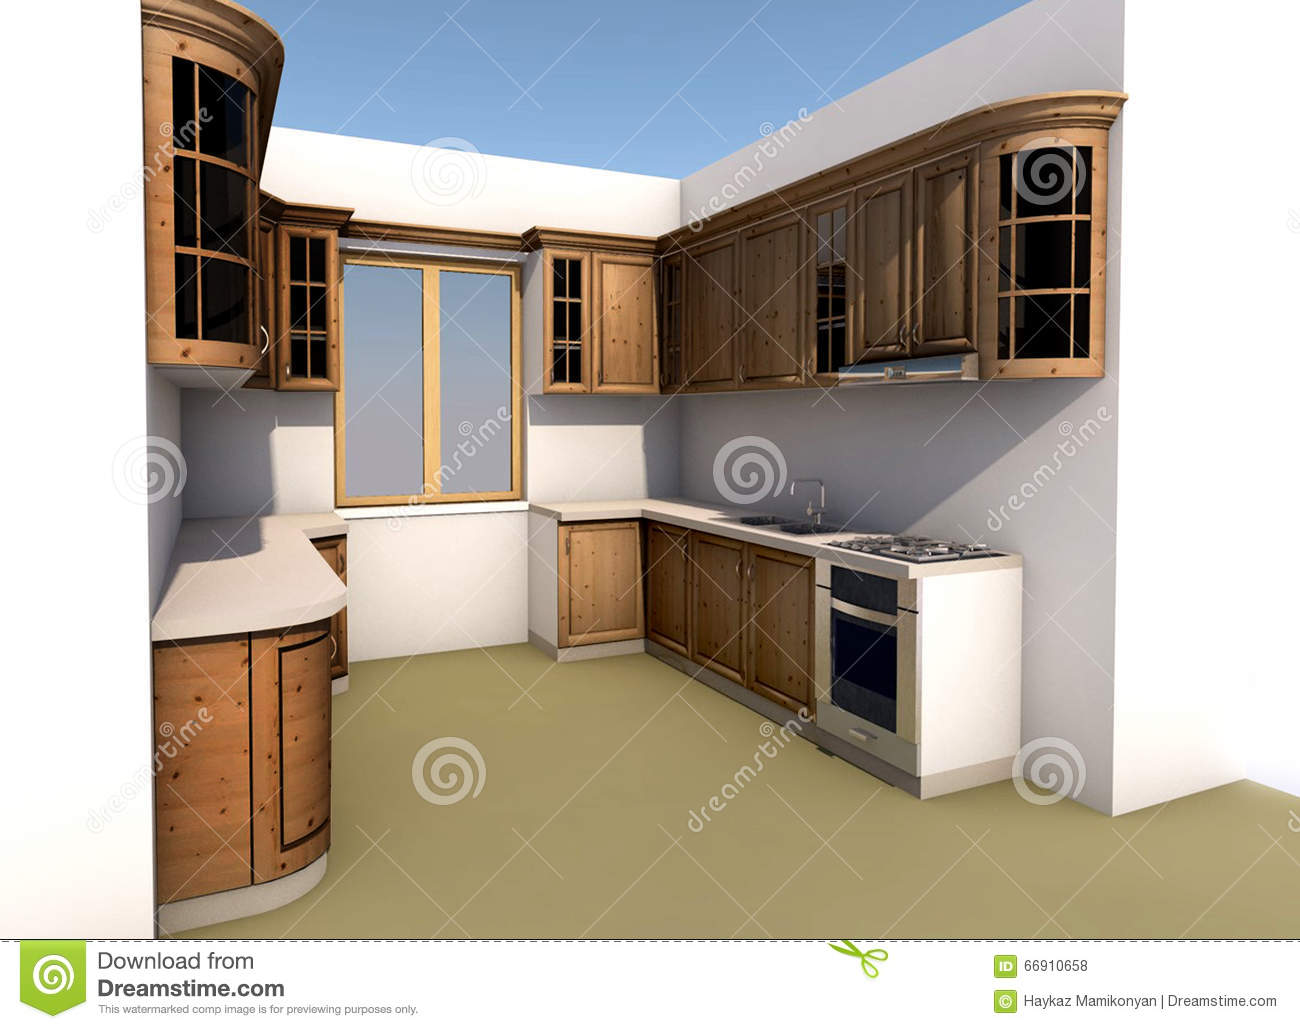 Autocad For Kitchen Design Kitchen Design Stock Illustration Image 66910658